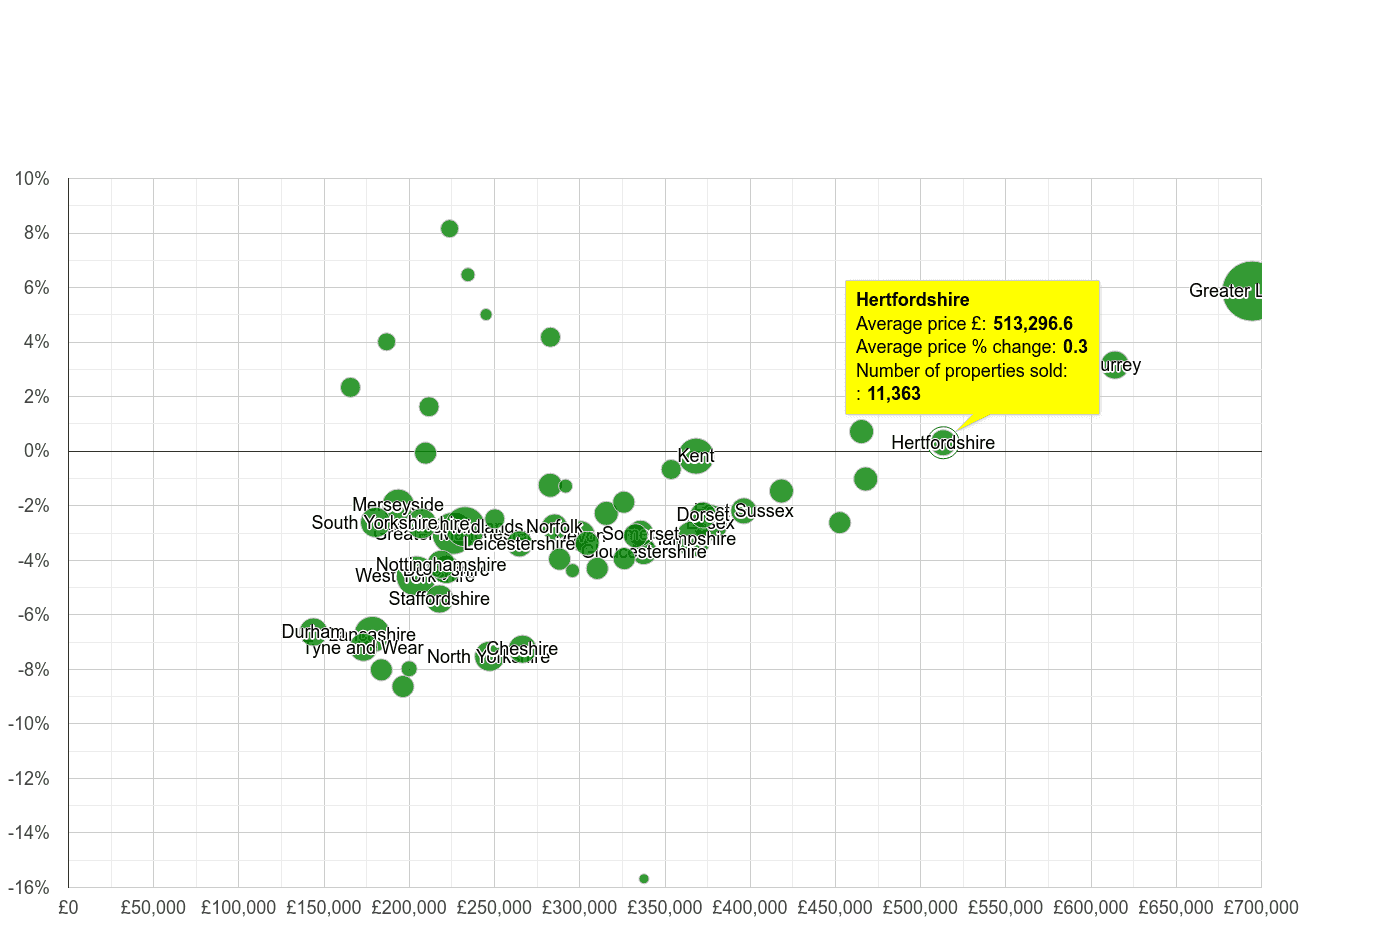 Hertfordshire house prices compared to other counties